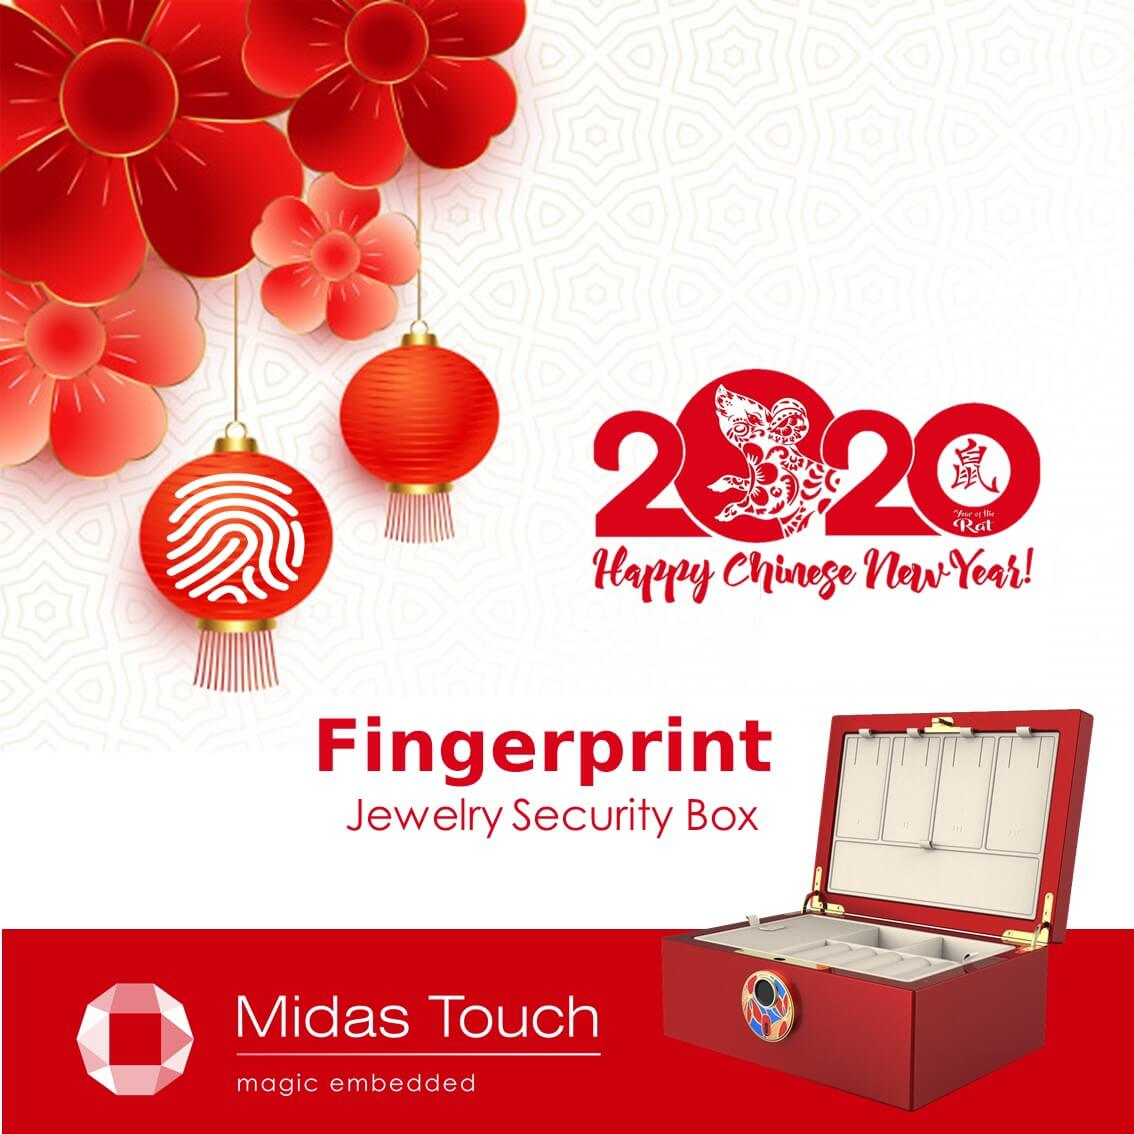 Fingerprint Jewelry Security Box | Midas Touch